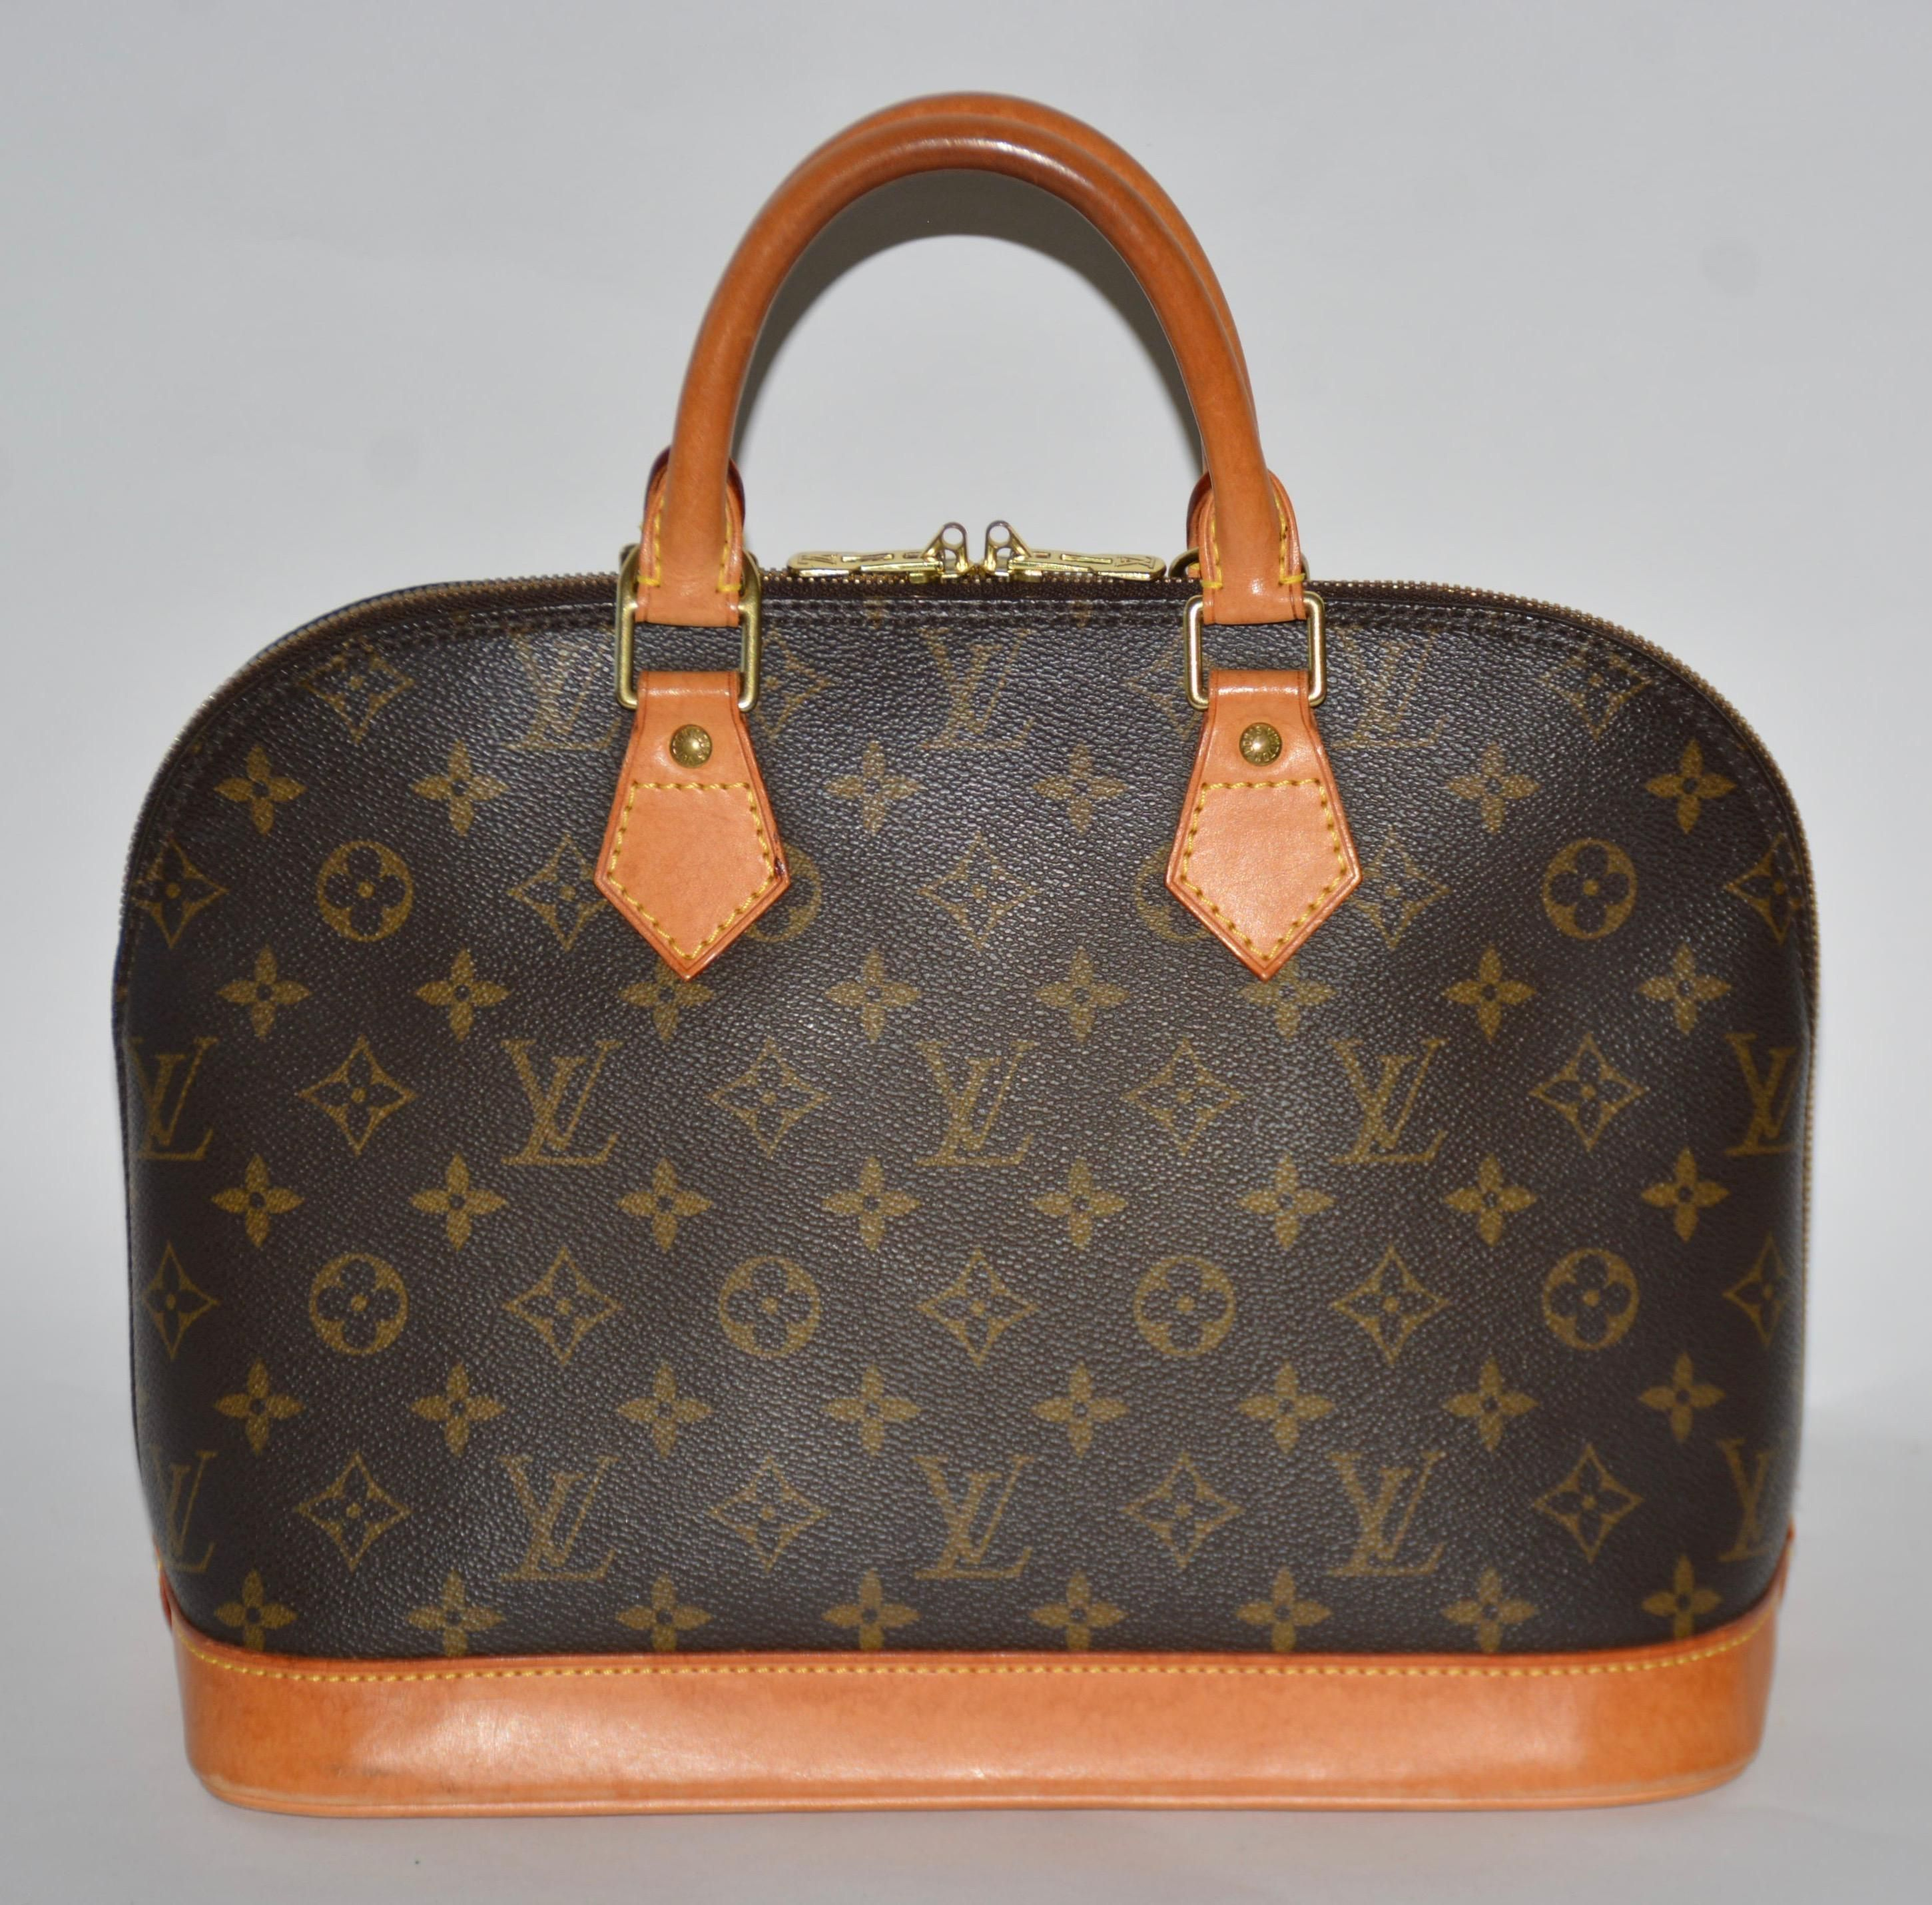 Louis Vuitton Monogram Canvas Alma Pm Brown Satchel. Save 66% on the Louis Vuitton Monogram Canvas Alma Pm Brown Satchel! This satchel is a top 10 member favorite on Tradesy. See how much you can save